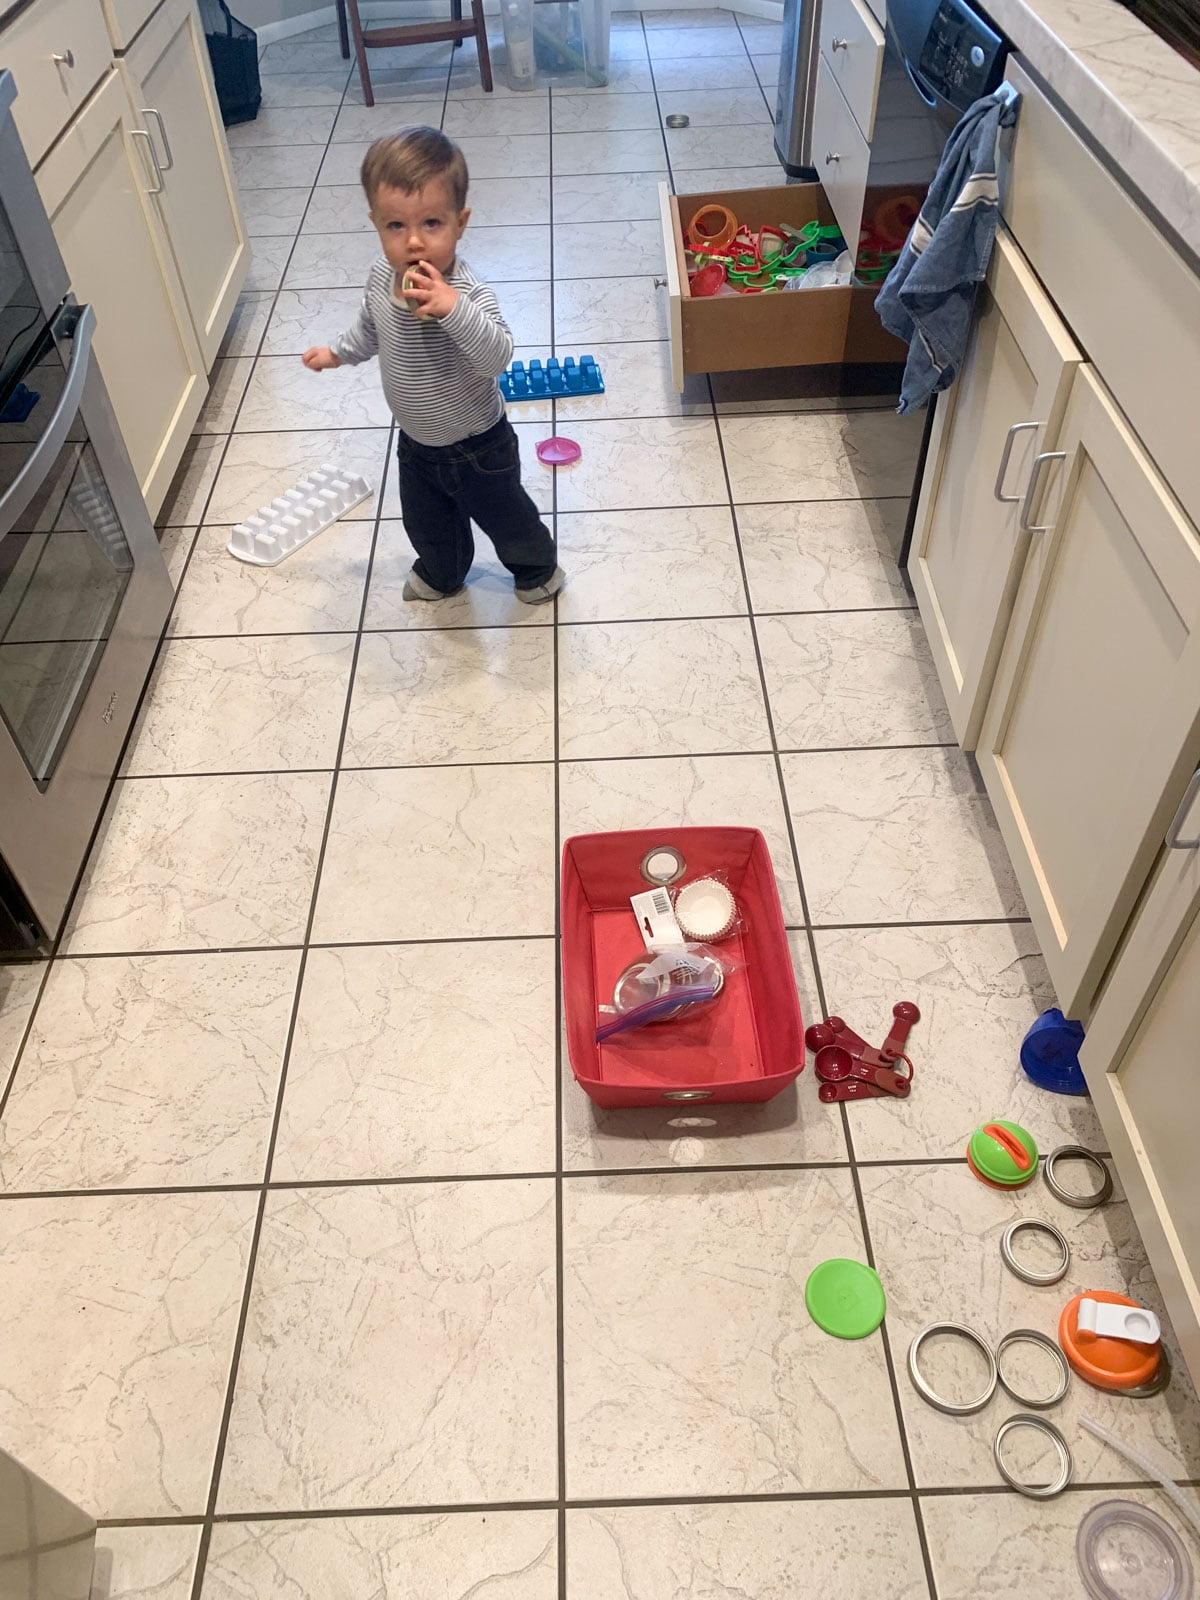 12 month old baby in kitchen